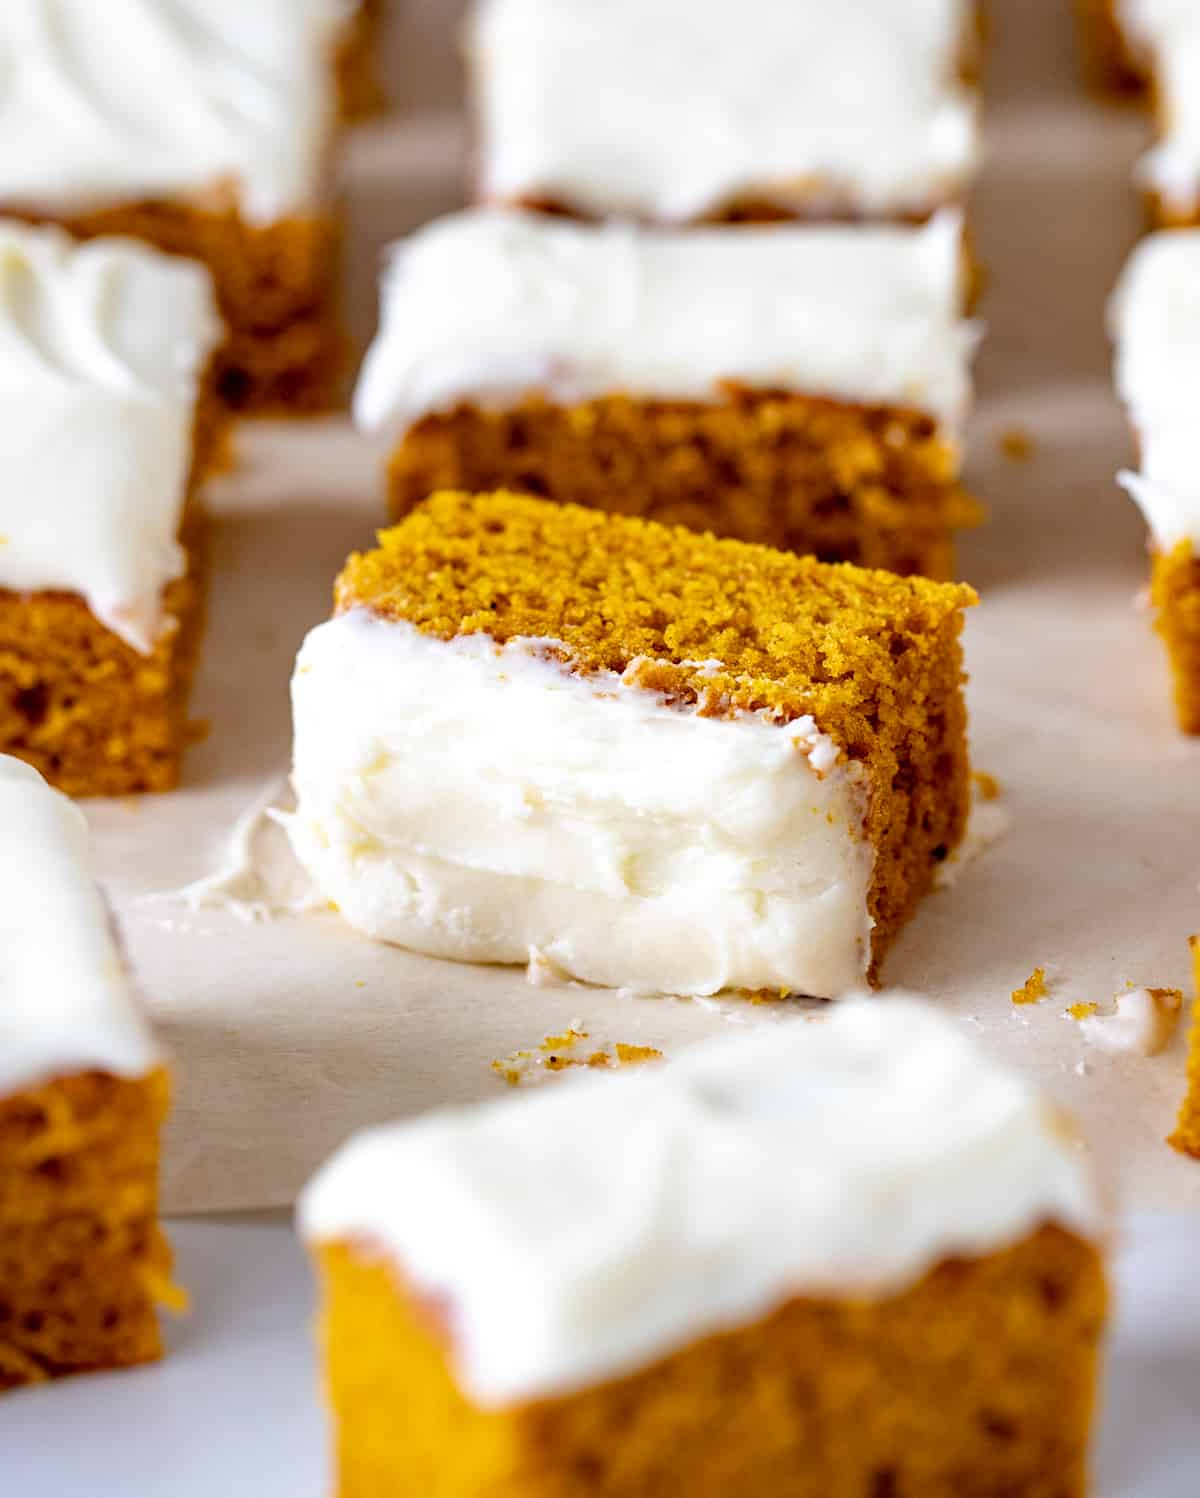 Several pieces of pumpkin sheet cake with cream cheese frosting on white surface